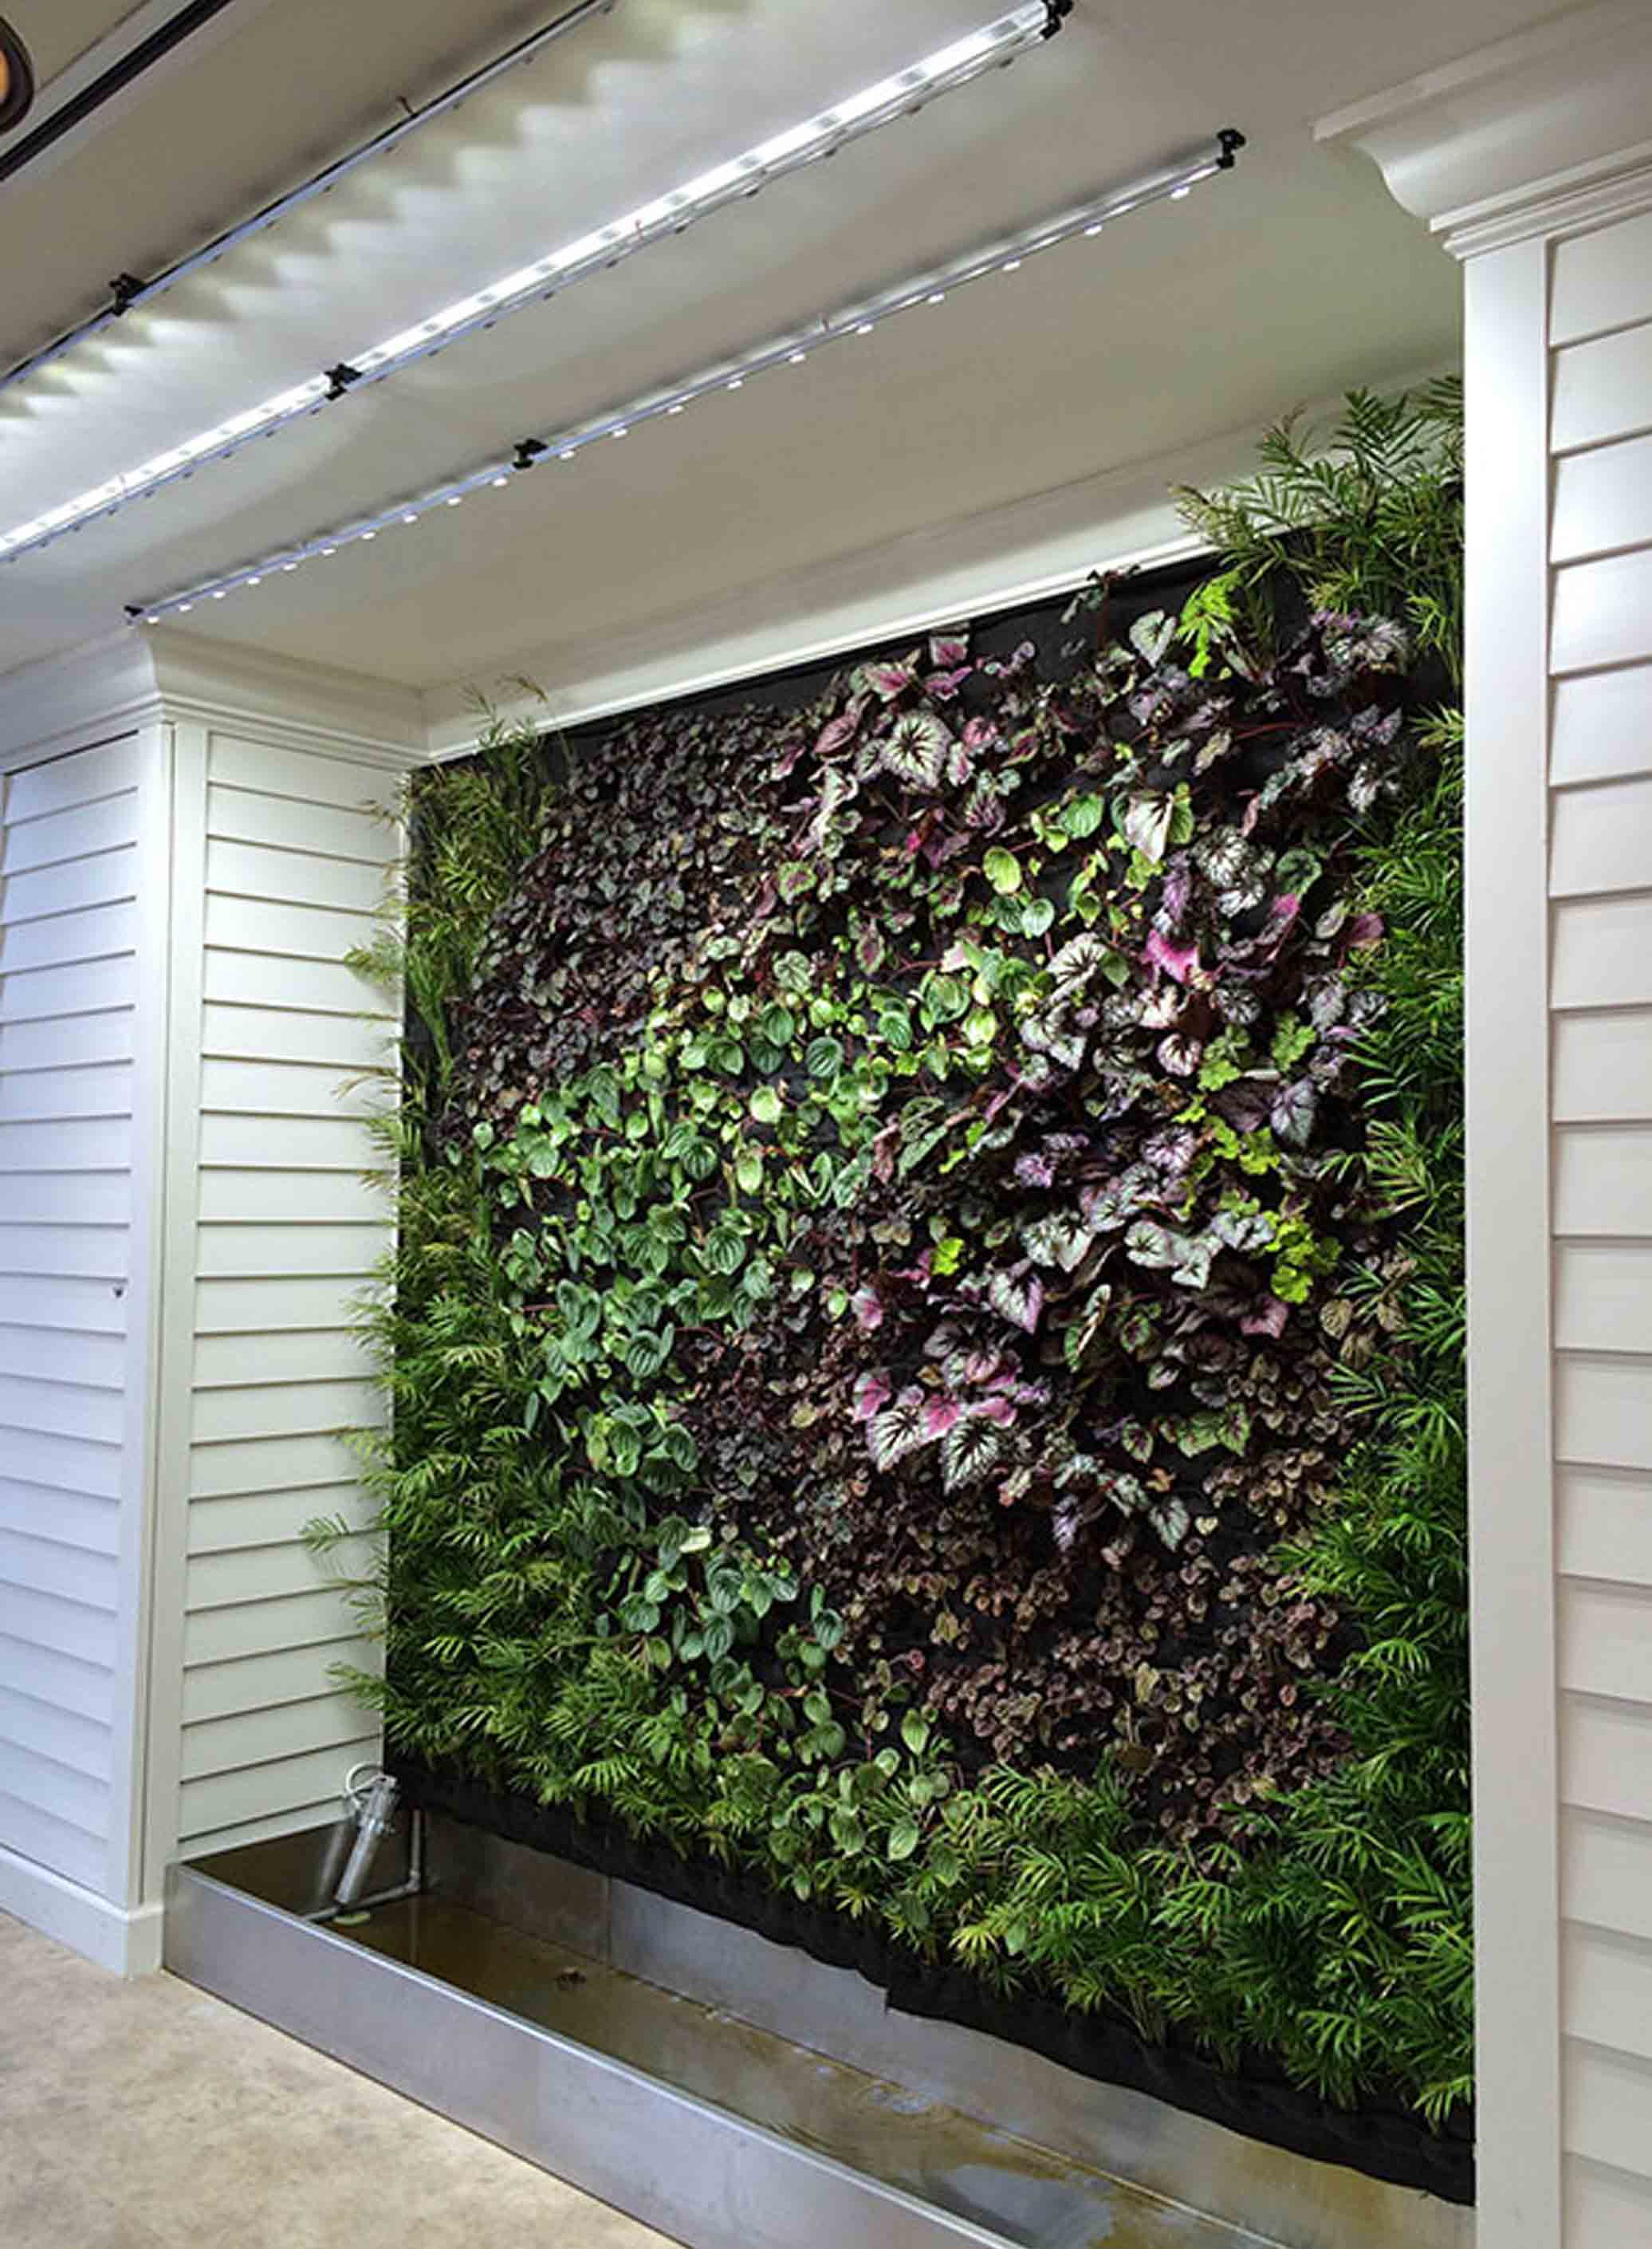 Green wall lighting sunlite science and technology inc new jersey greenwall aloadofball Gallery